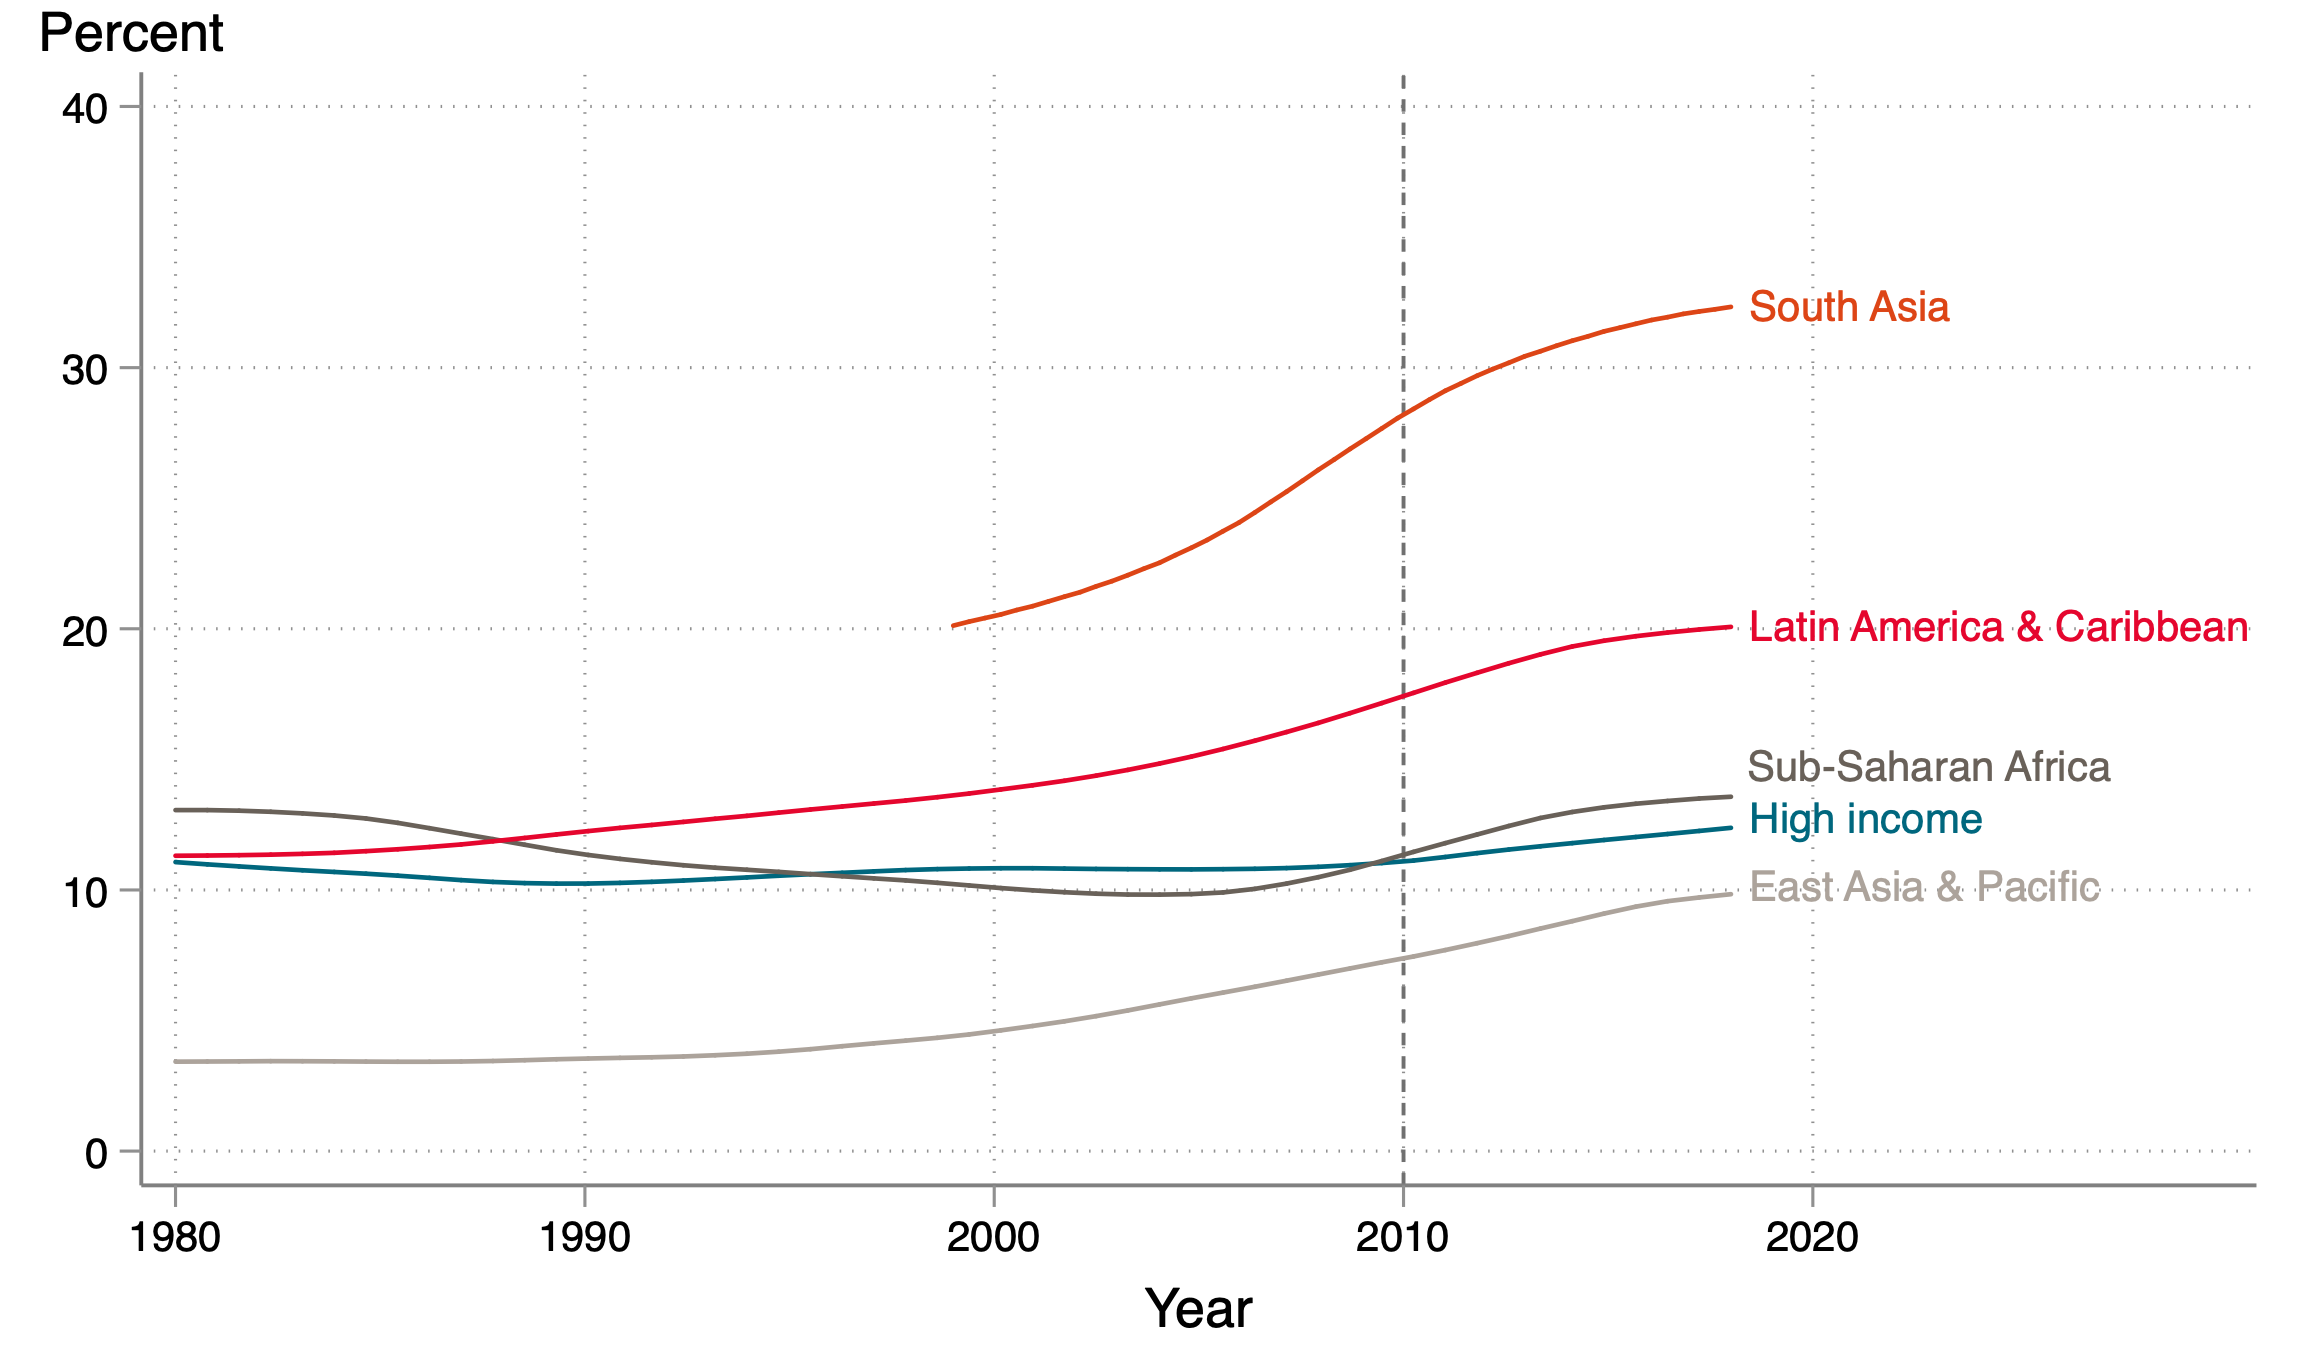 Chart showing private primary school enrolment percentage is quite high and rising in South Asia (over 30%), and lower elsewhere.